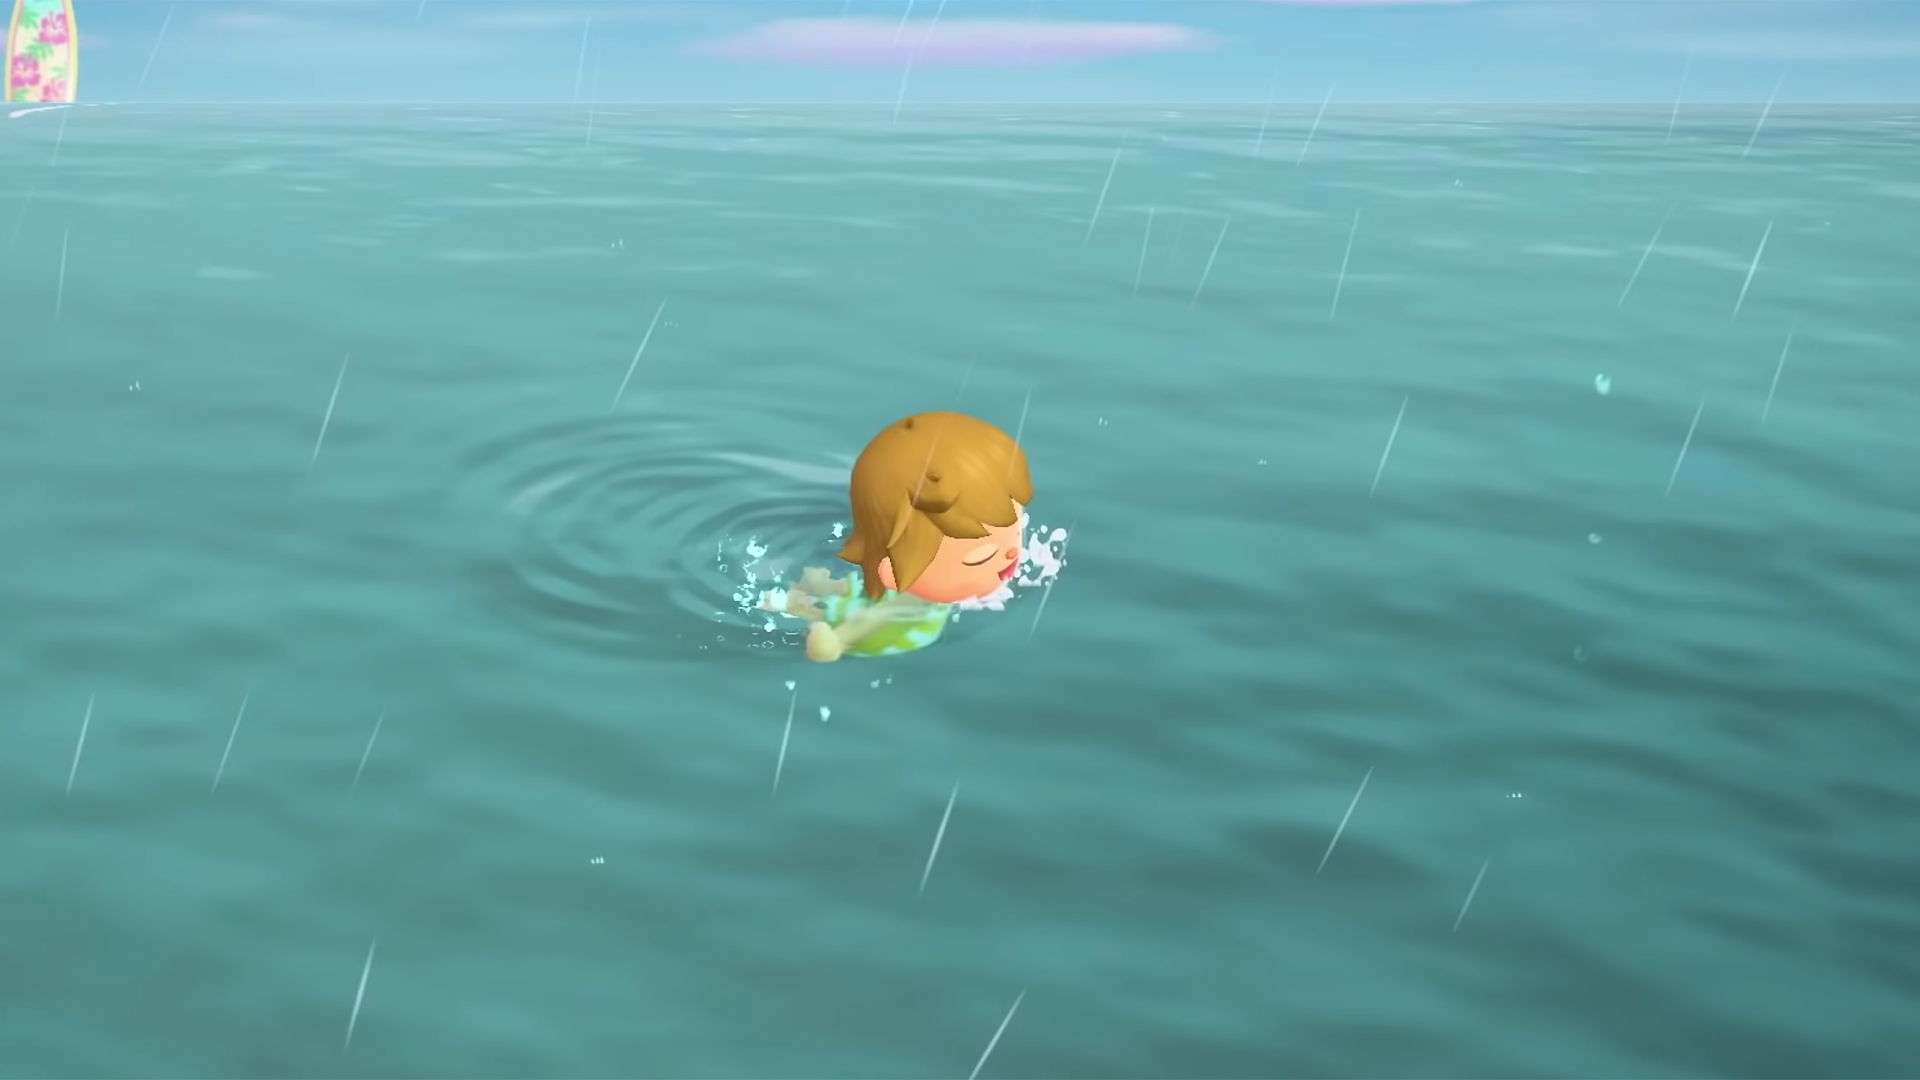 How to swim, buy wetsuit in Animal Crossing summer update